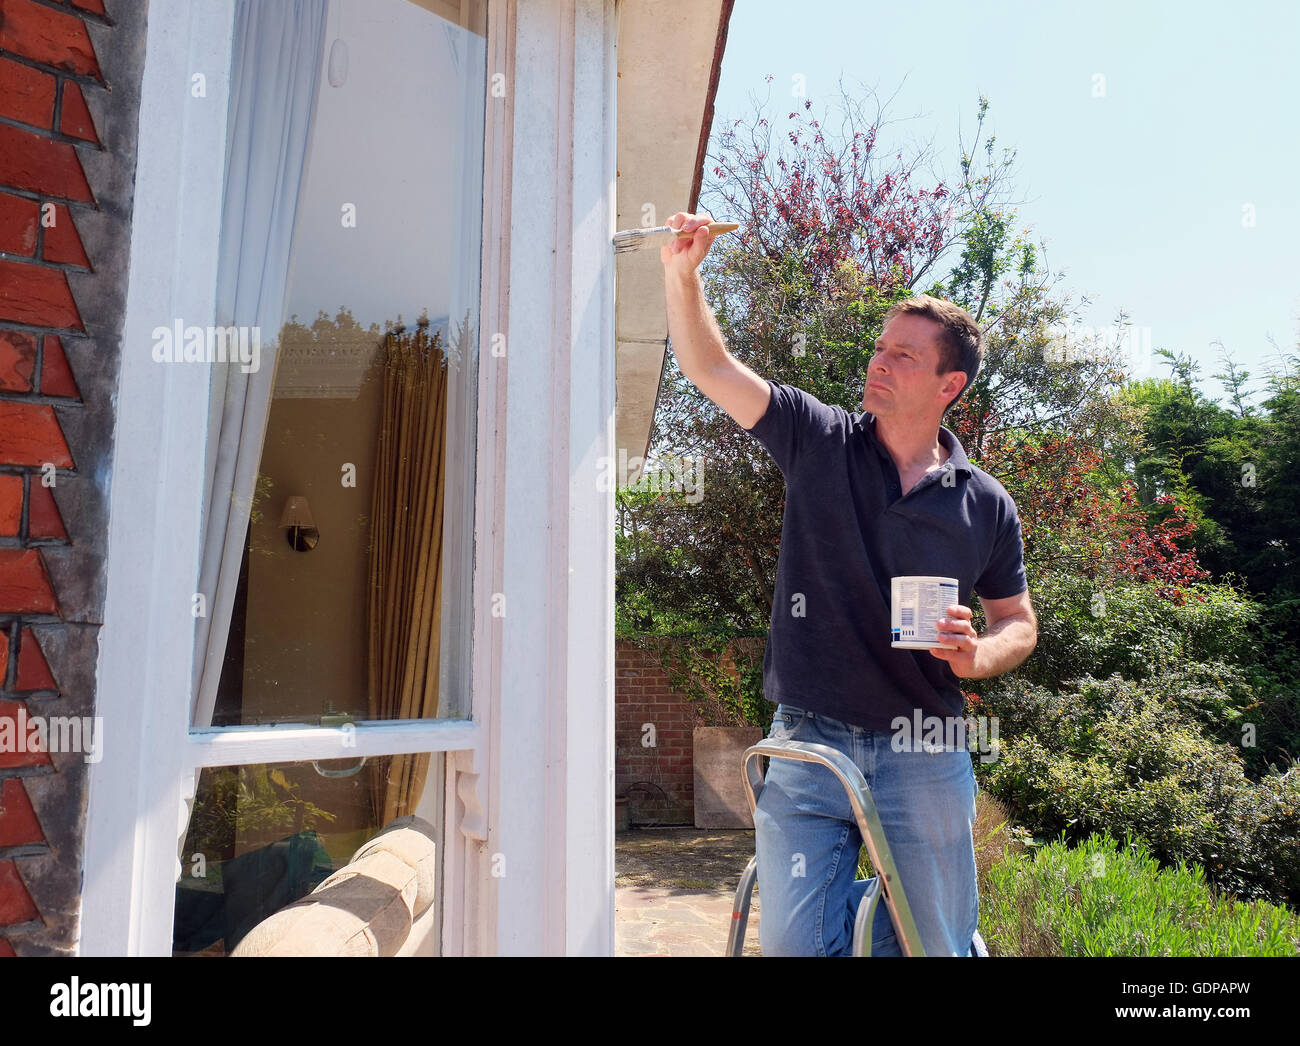 Man on ladder painting window frame Stock Photo: 111744161 - Alamy